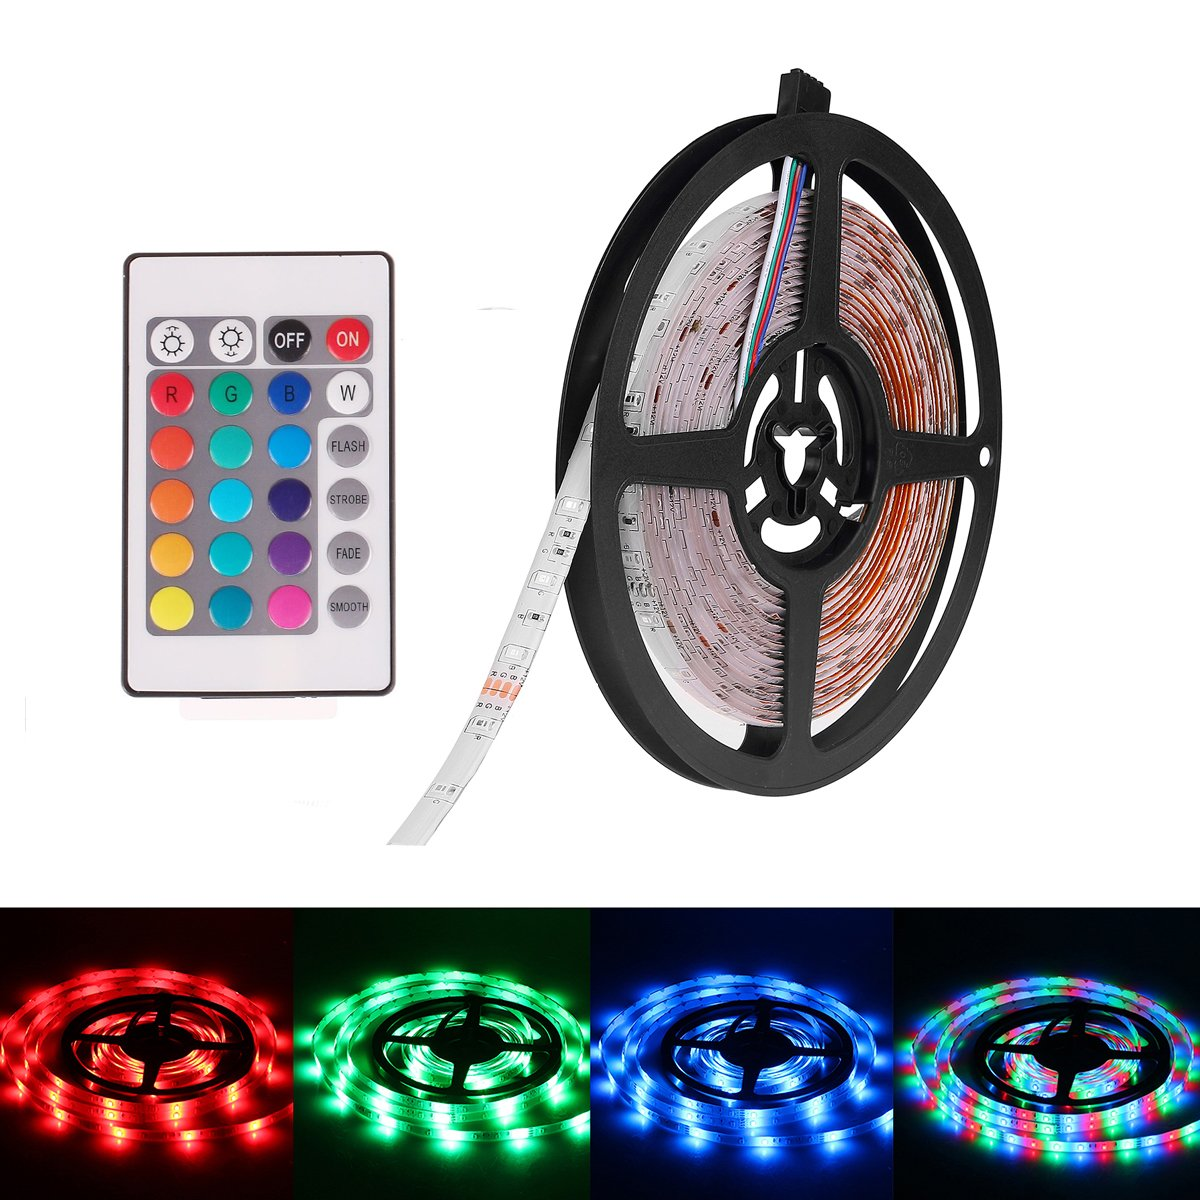 Super Bright Waterproof 12V 300 SMD LED Strip Flexible Light Strip 5050 Cool White 16.4 Foot / 5 Meter With Adhesive Back LemonBest